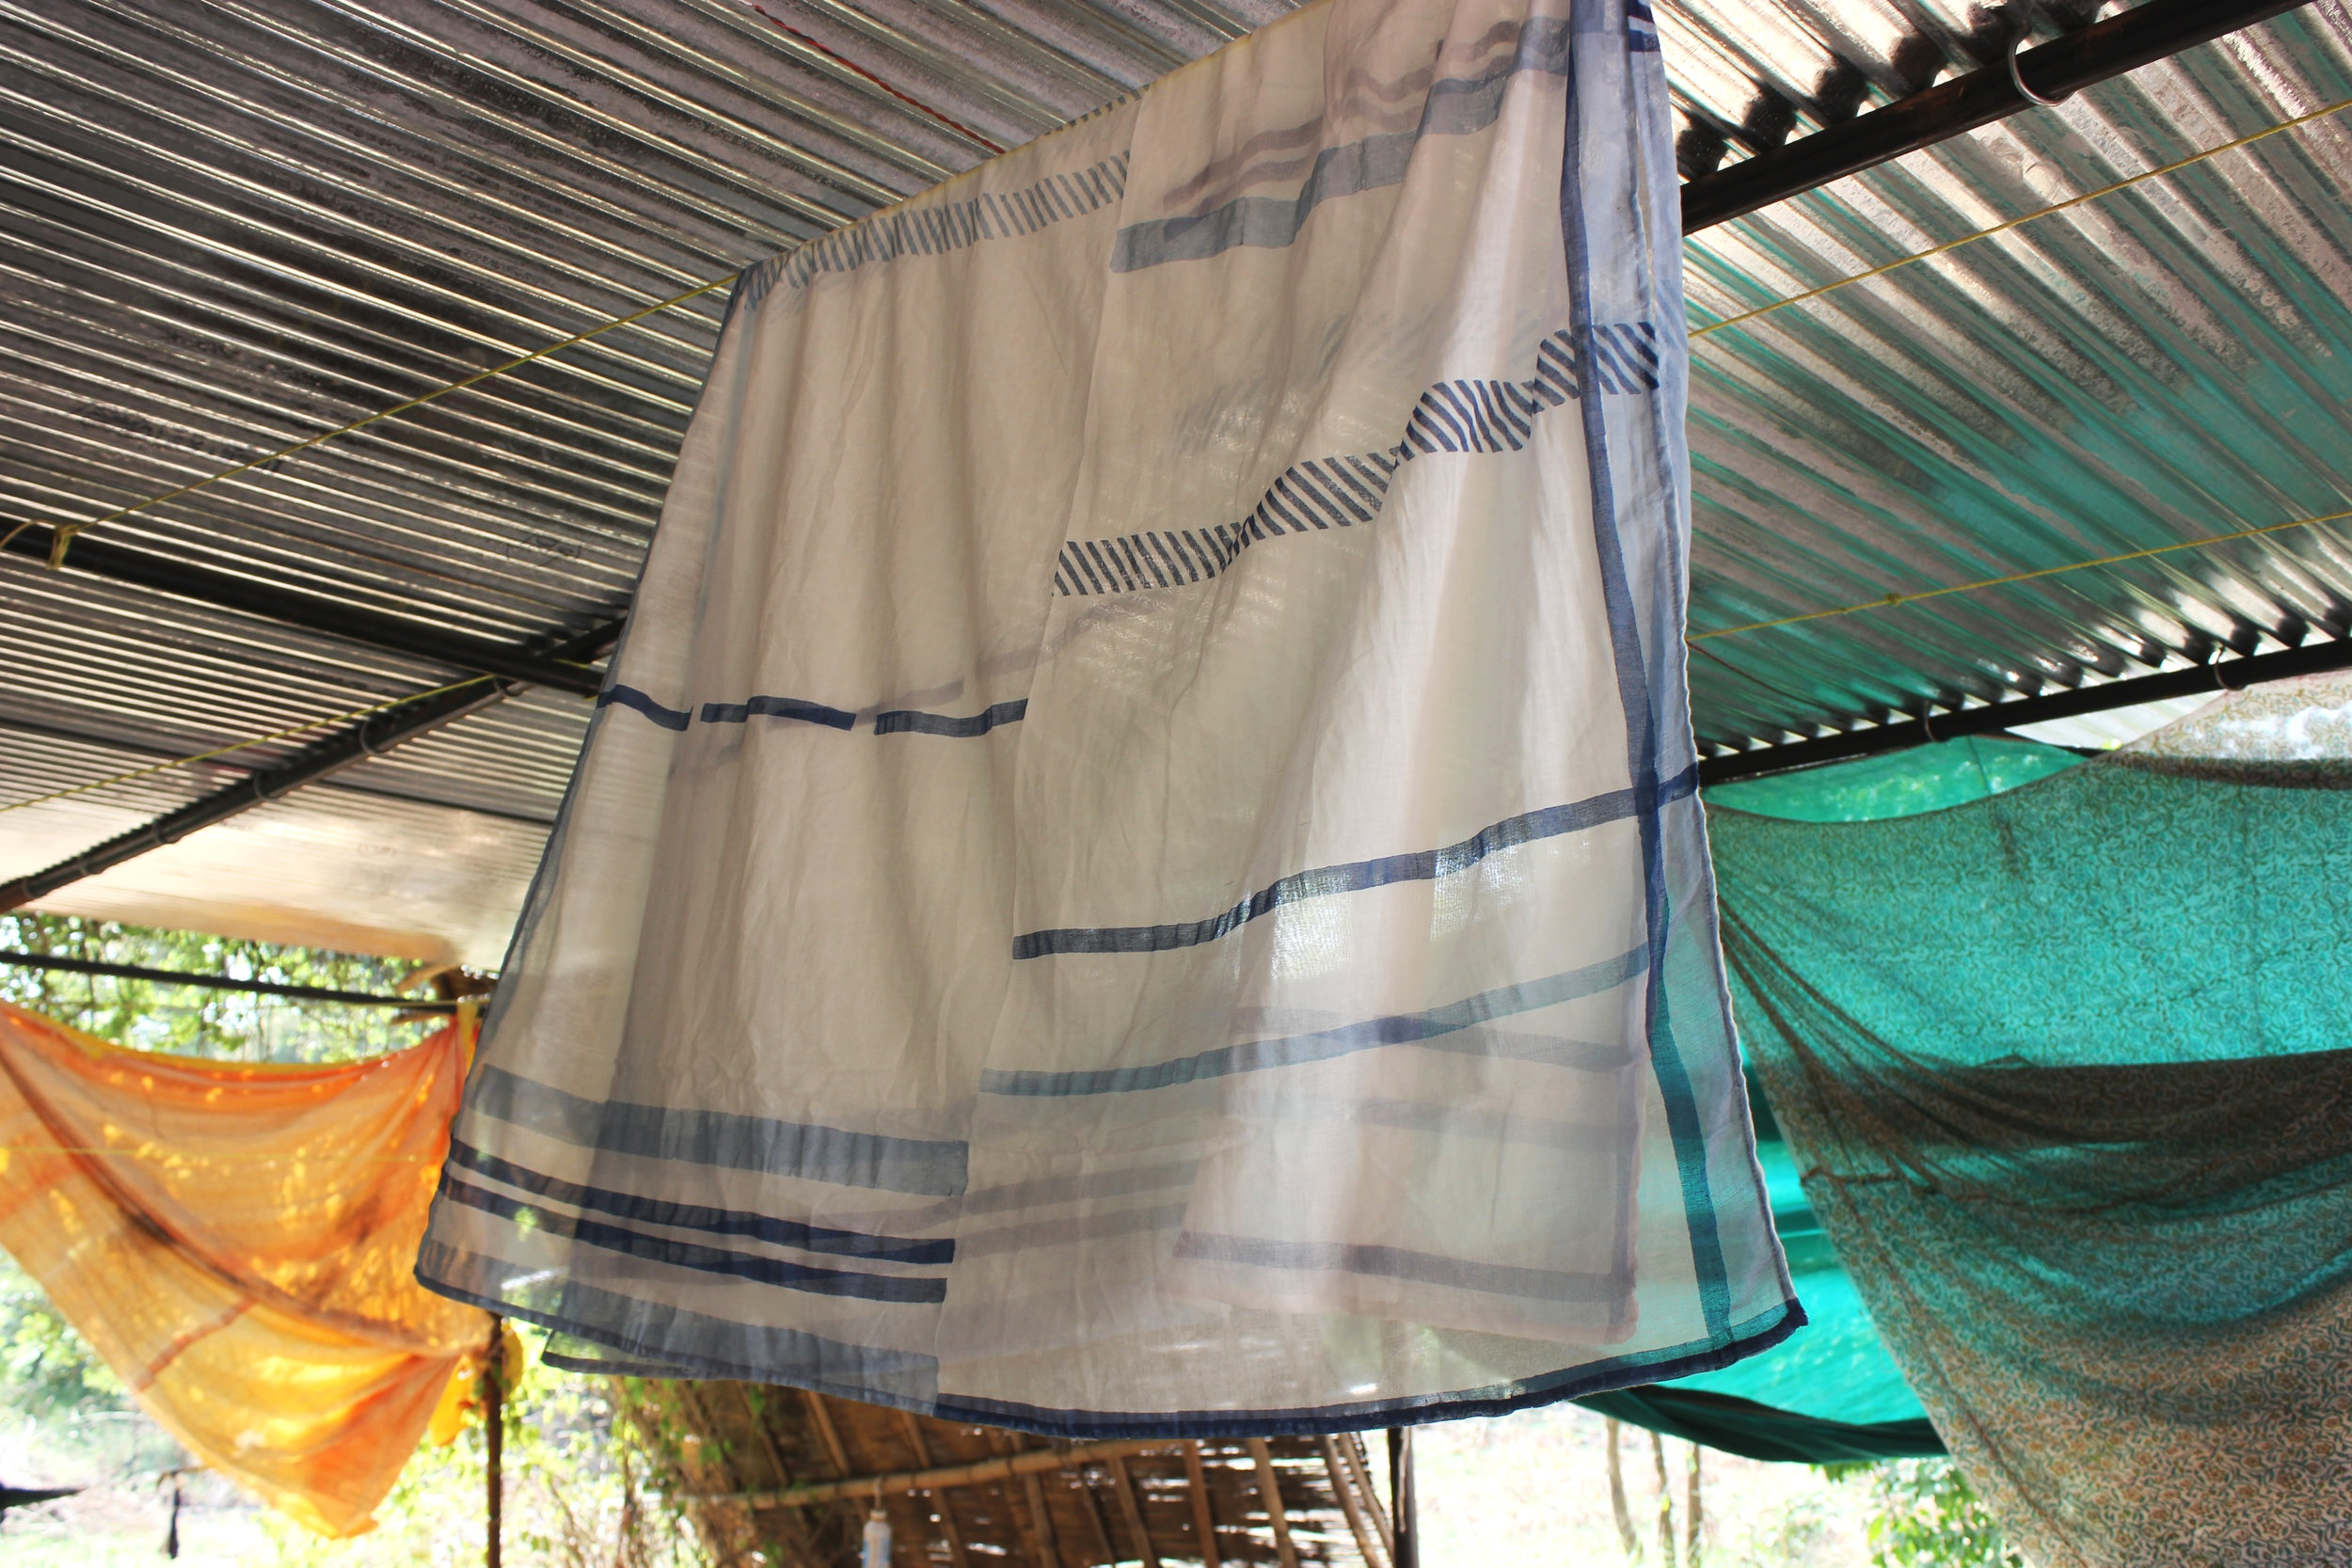 A finished Indian Roller FLIGHT scarf - hung to dry before steaming which sets the colors.